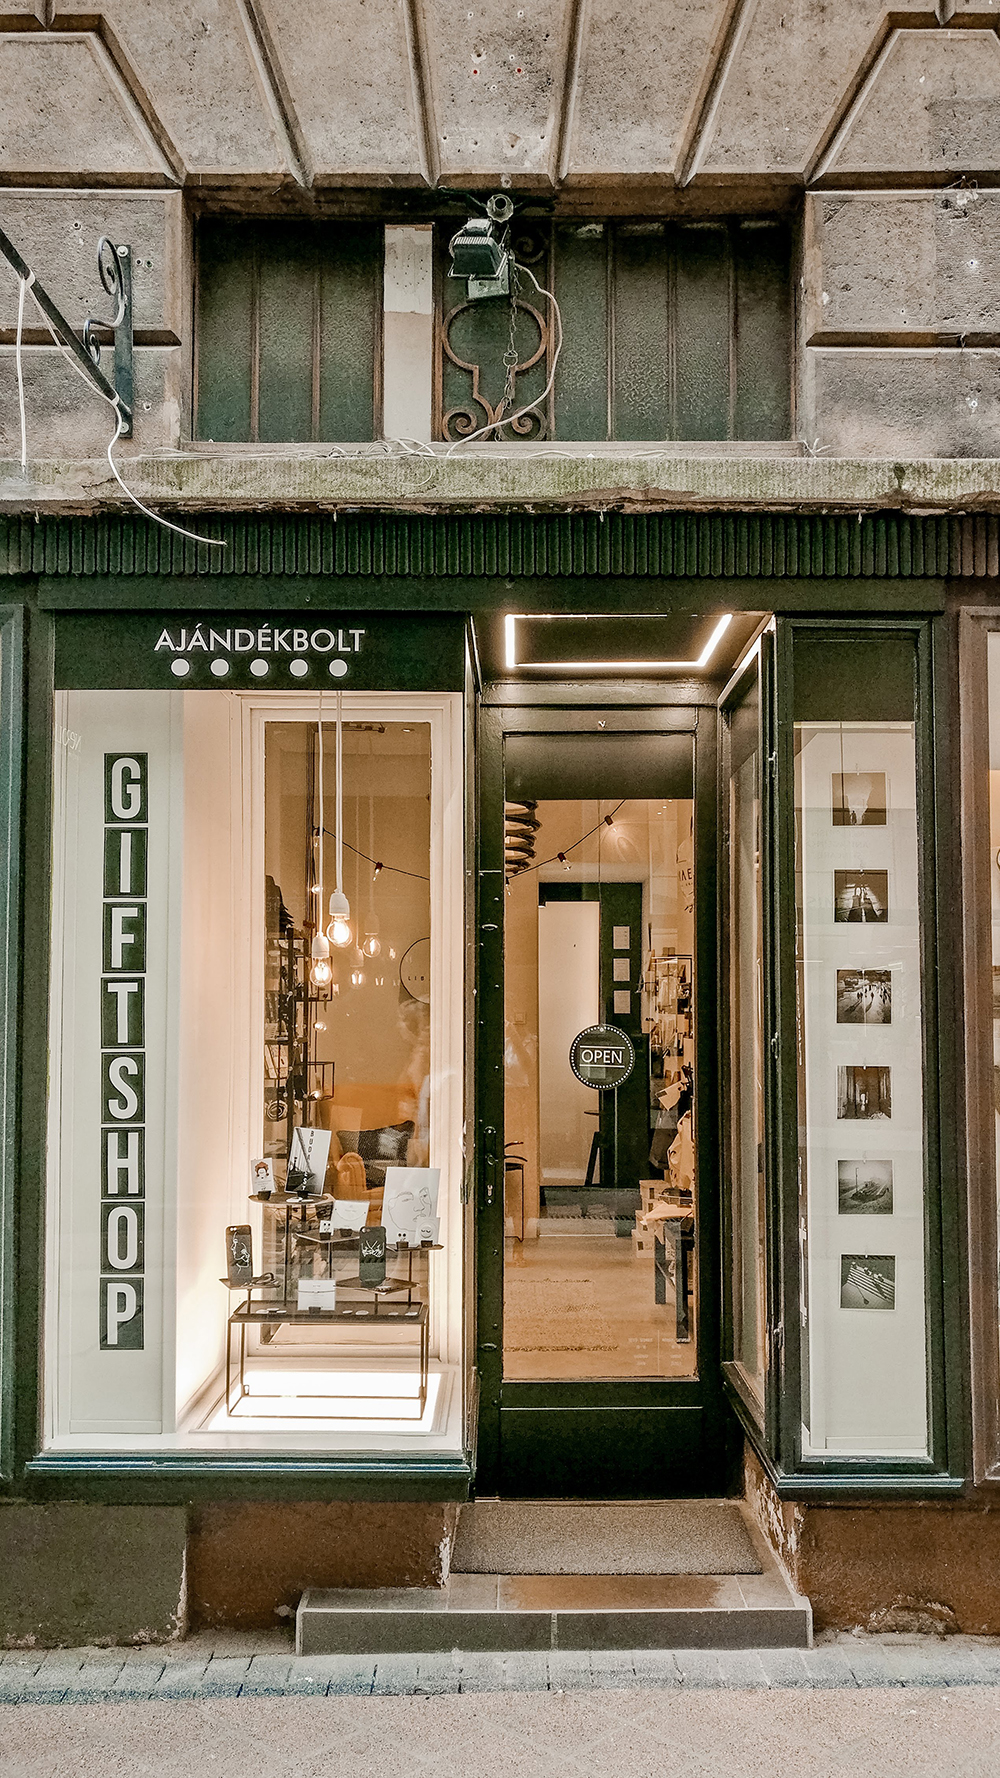 Libabőr gift shop - Budapest design shop guide to best Hungarian souvenirs | Aliz's Wonderland